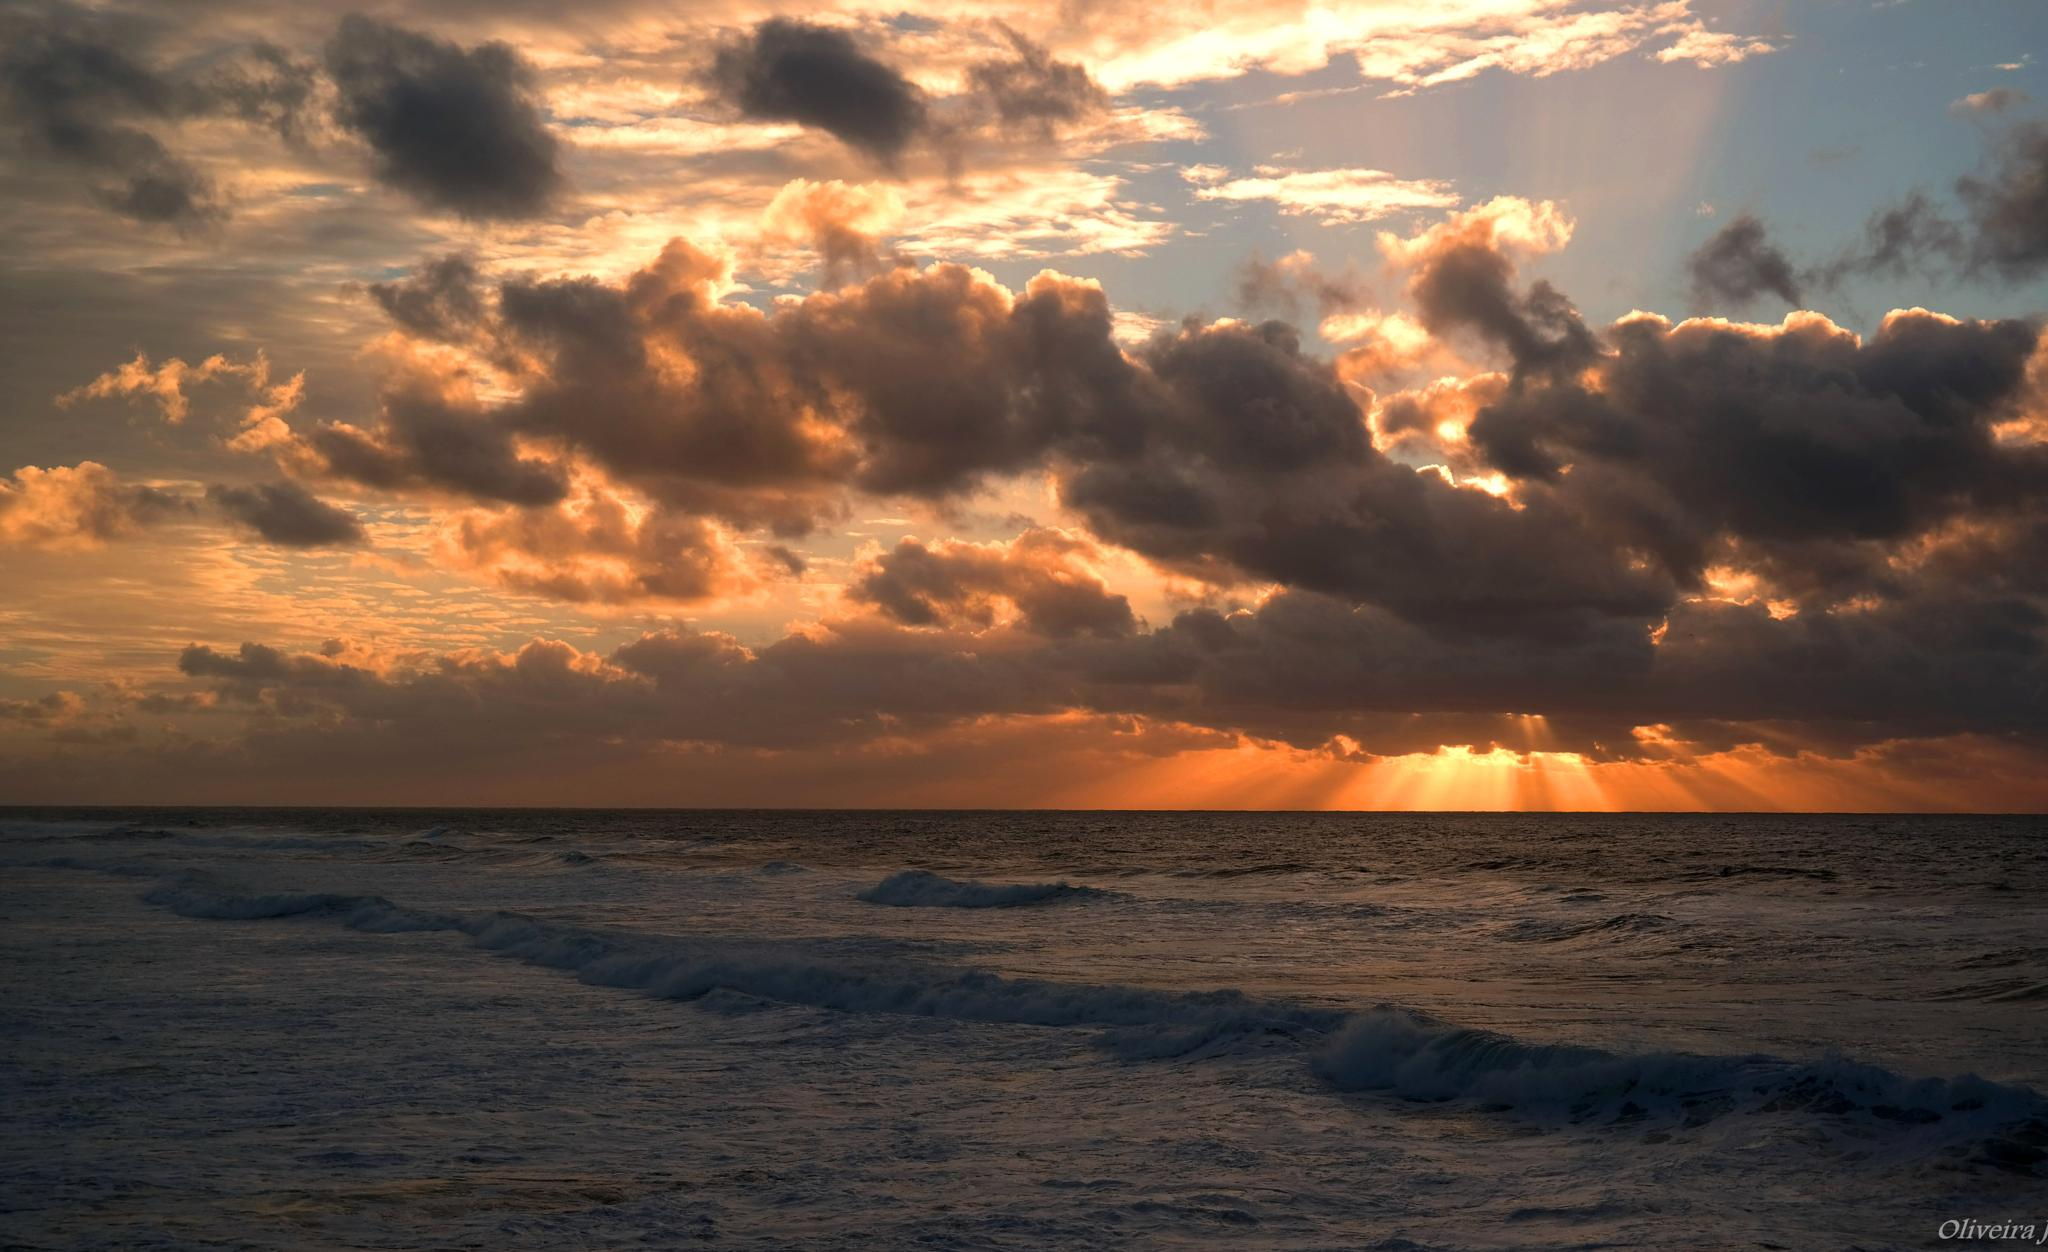 SUNSET OVER THE SEA by joseoliveira1694